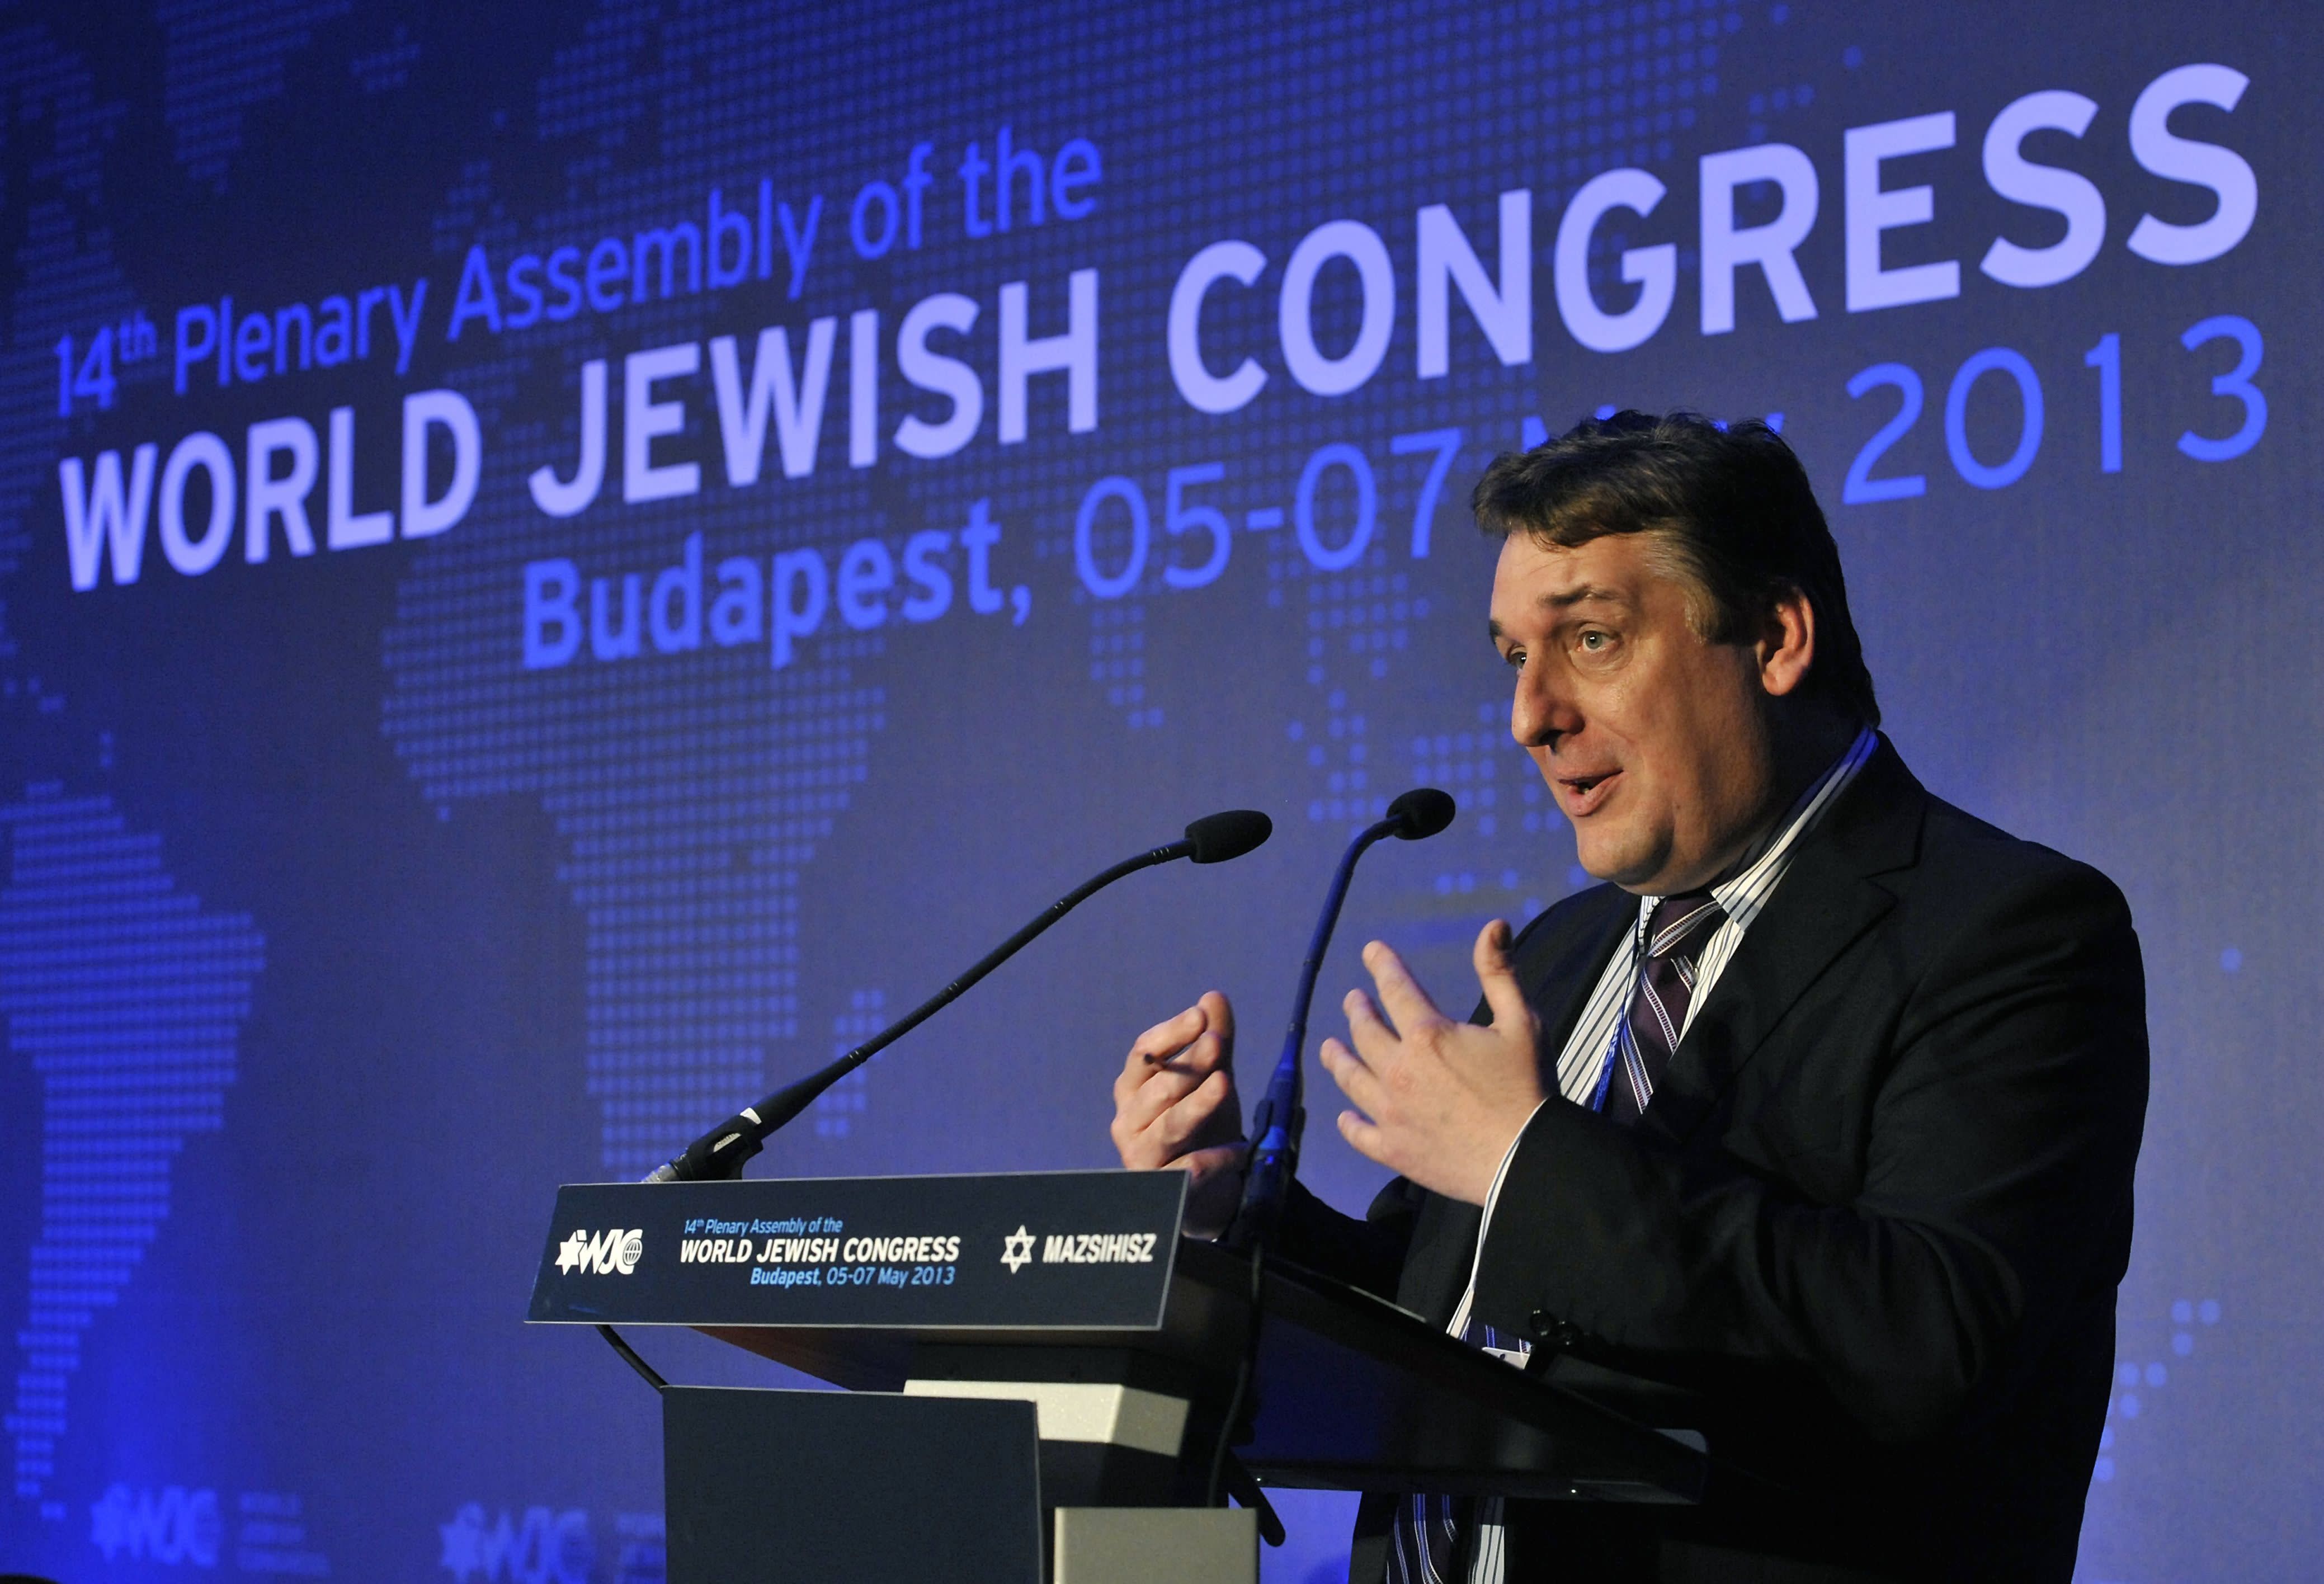 British journalist Robin Shepherd delivers his speech during the 14th Plenary Assembly of the World Jewish Congress in Budapest, Hungary, Tuesday, May 7, 2013. (AP Photo/MTI, Lajos Soos)